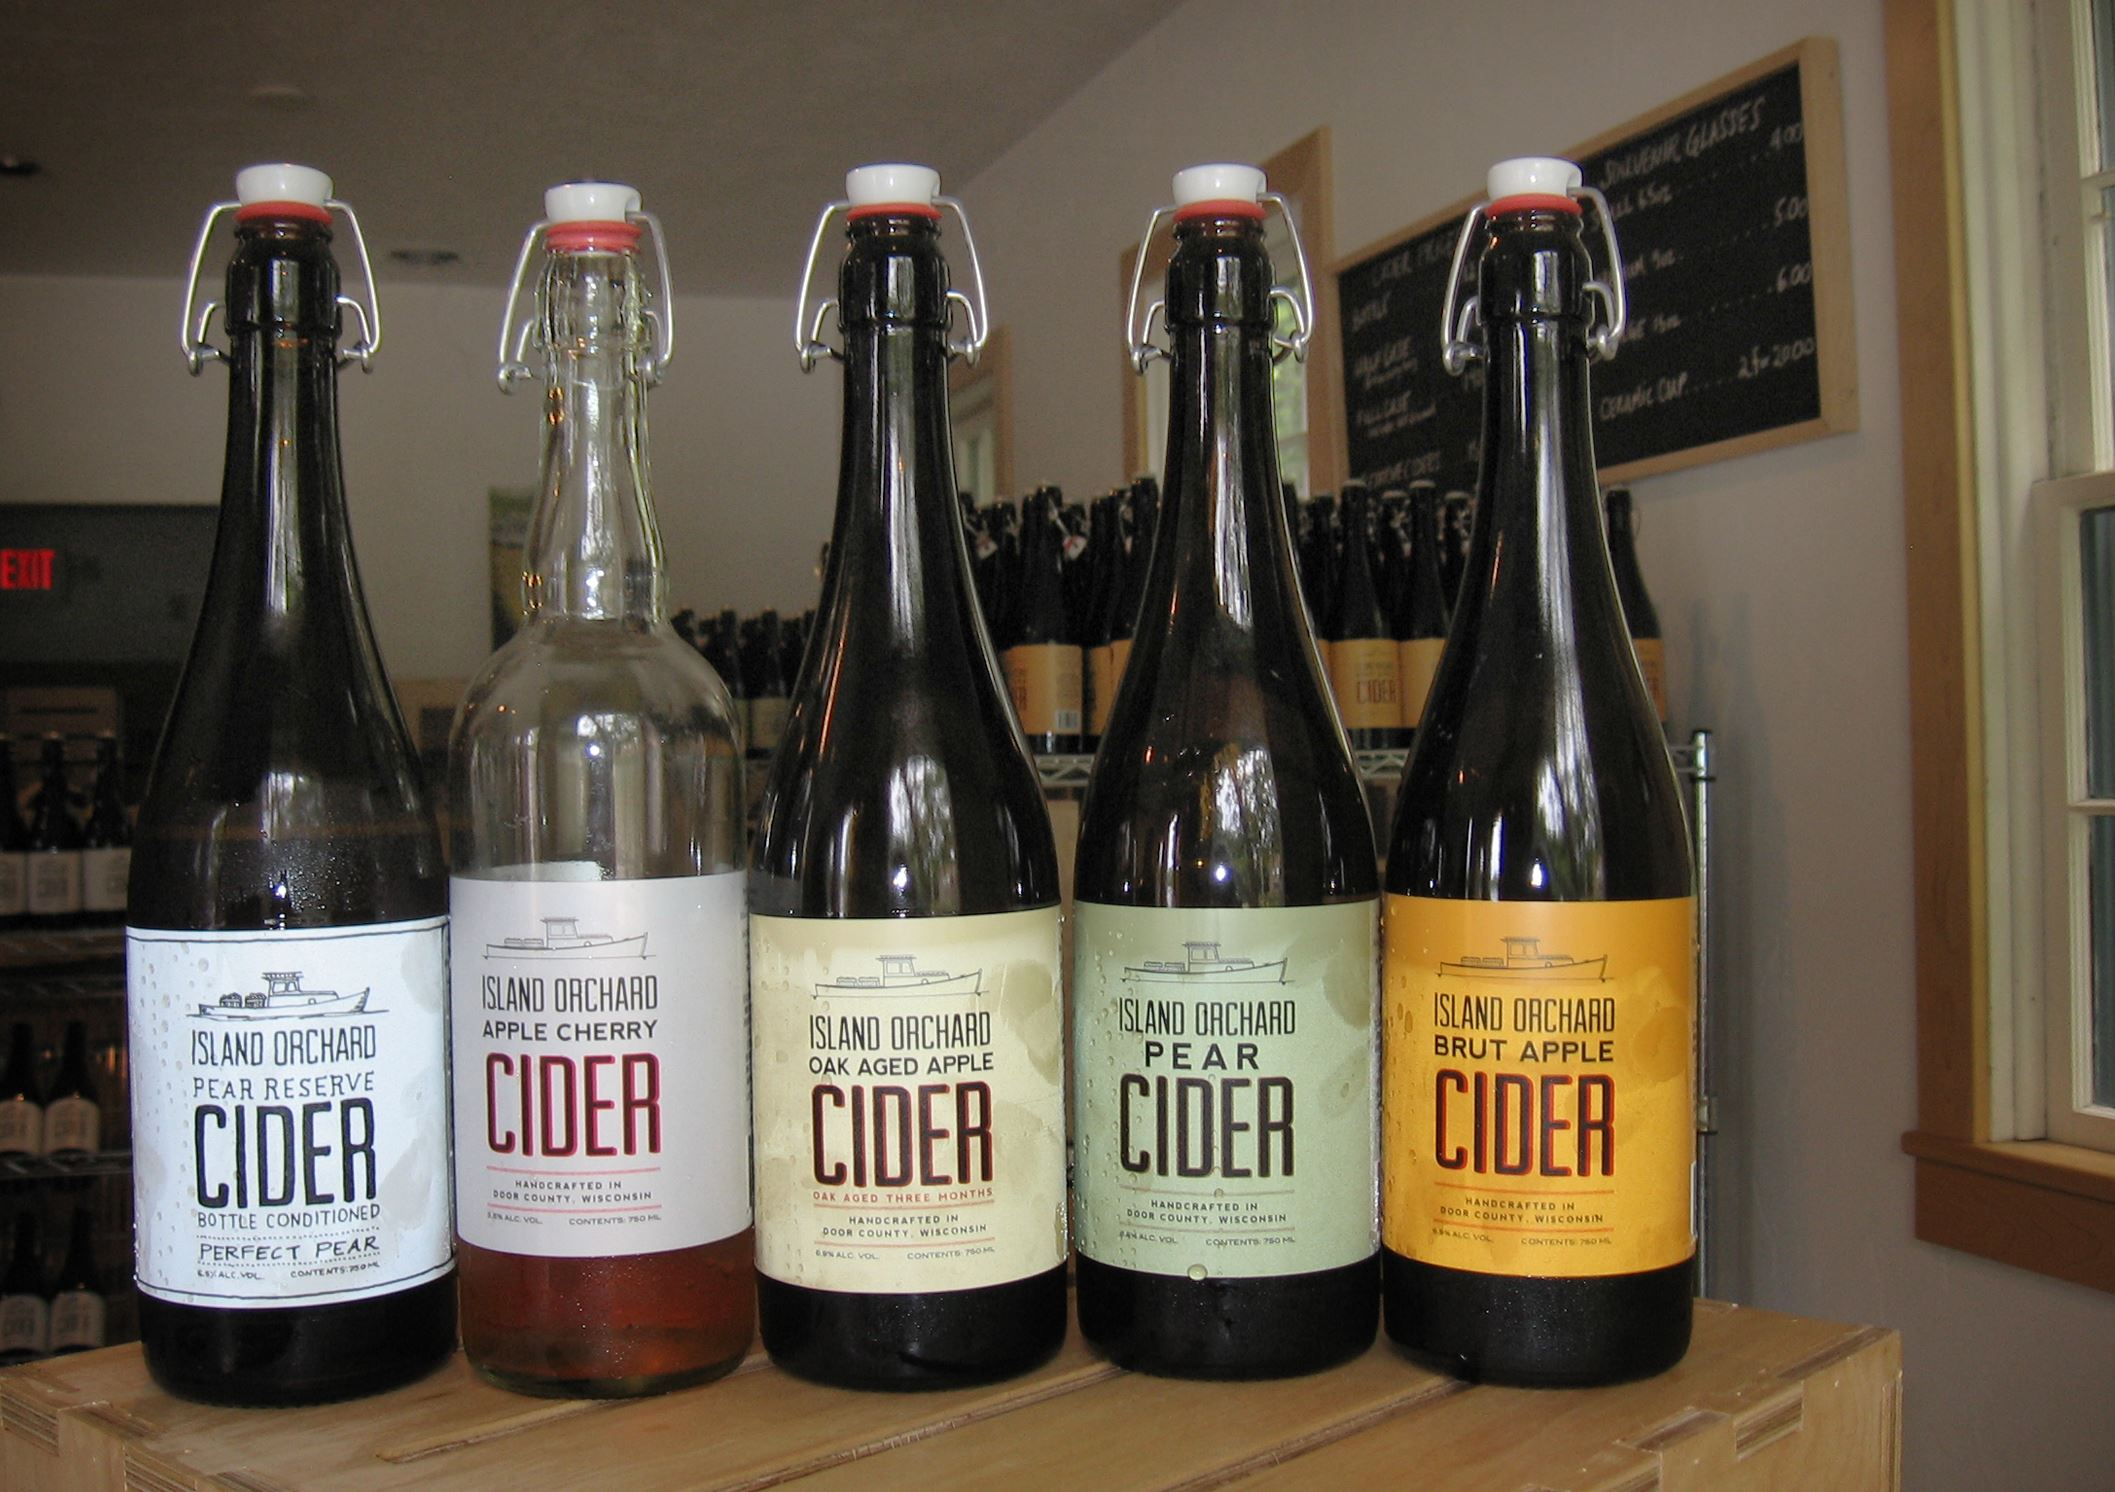 20140729howisccfood-1 Island Orchard Cider's Normandy-style ciders, from Ellison Bay, Wisc.